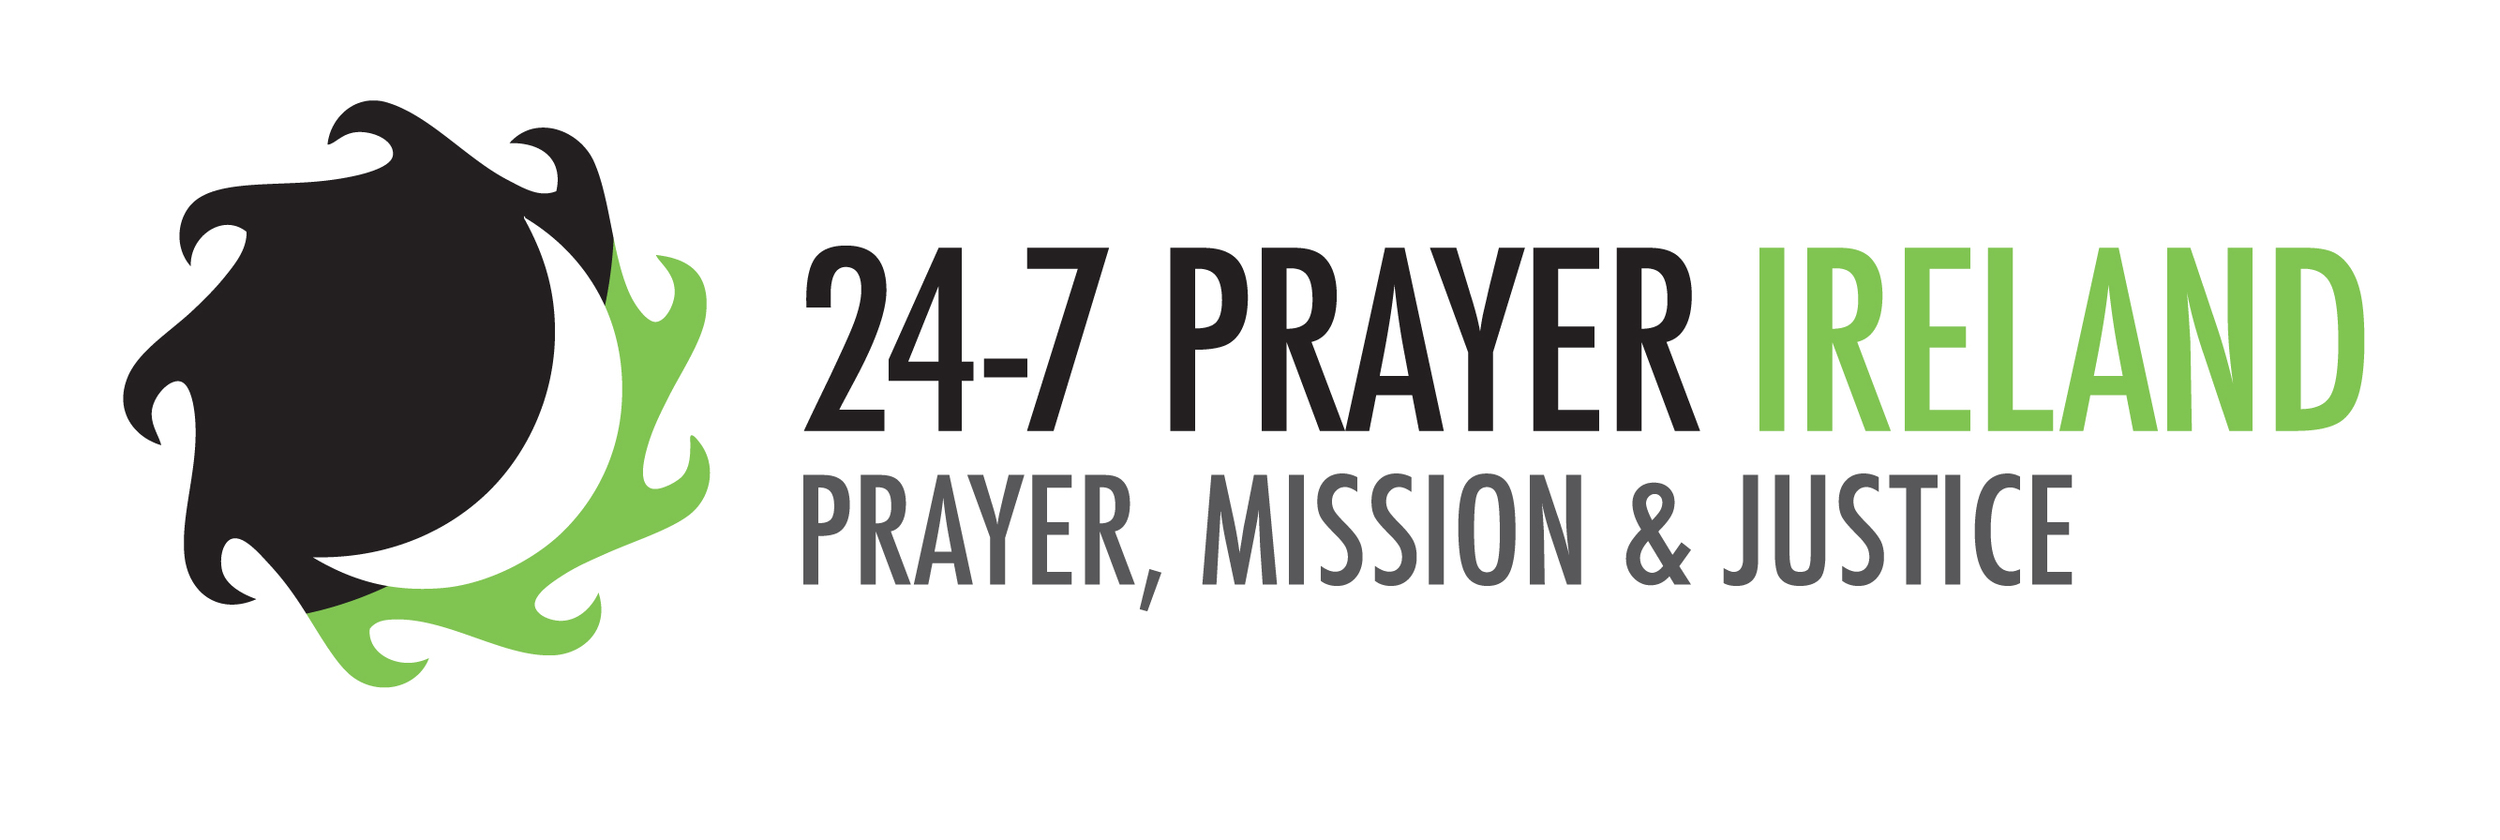 Prayer Spaces in Schools is an initiative of 24-7 Prayer